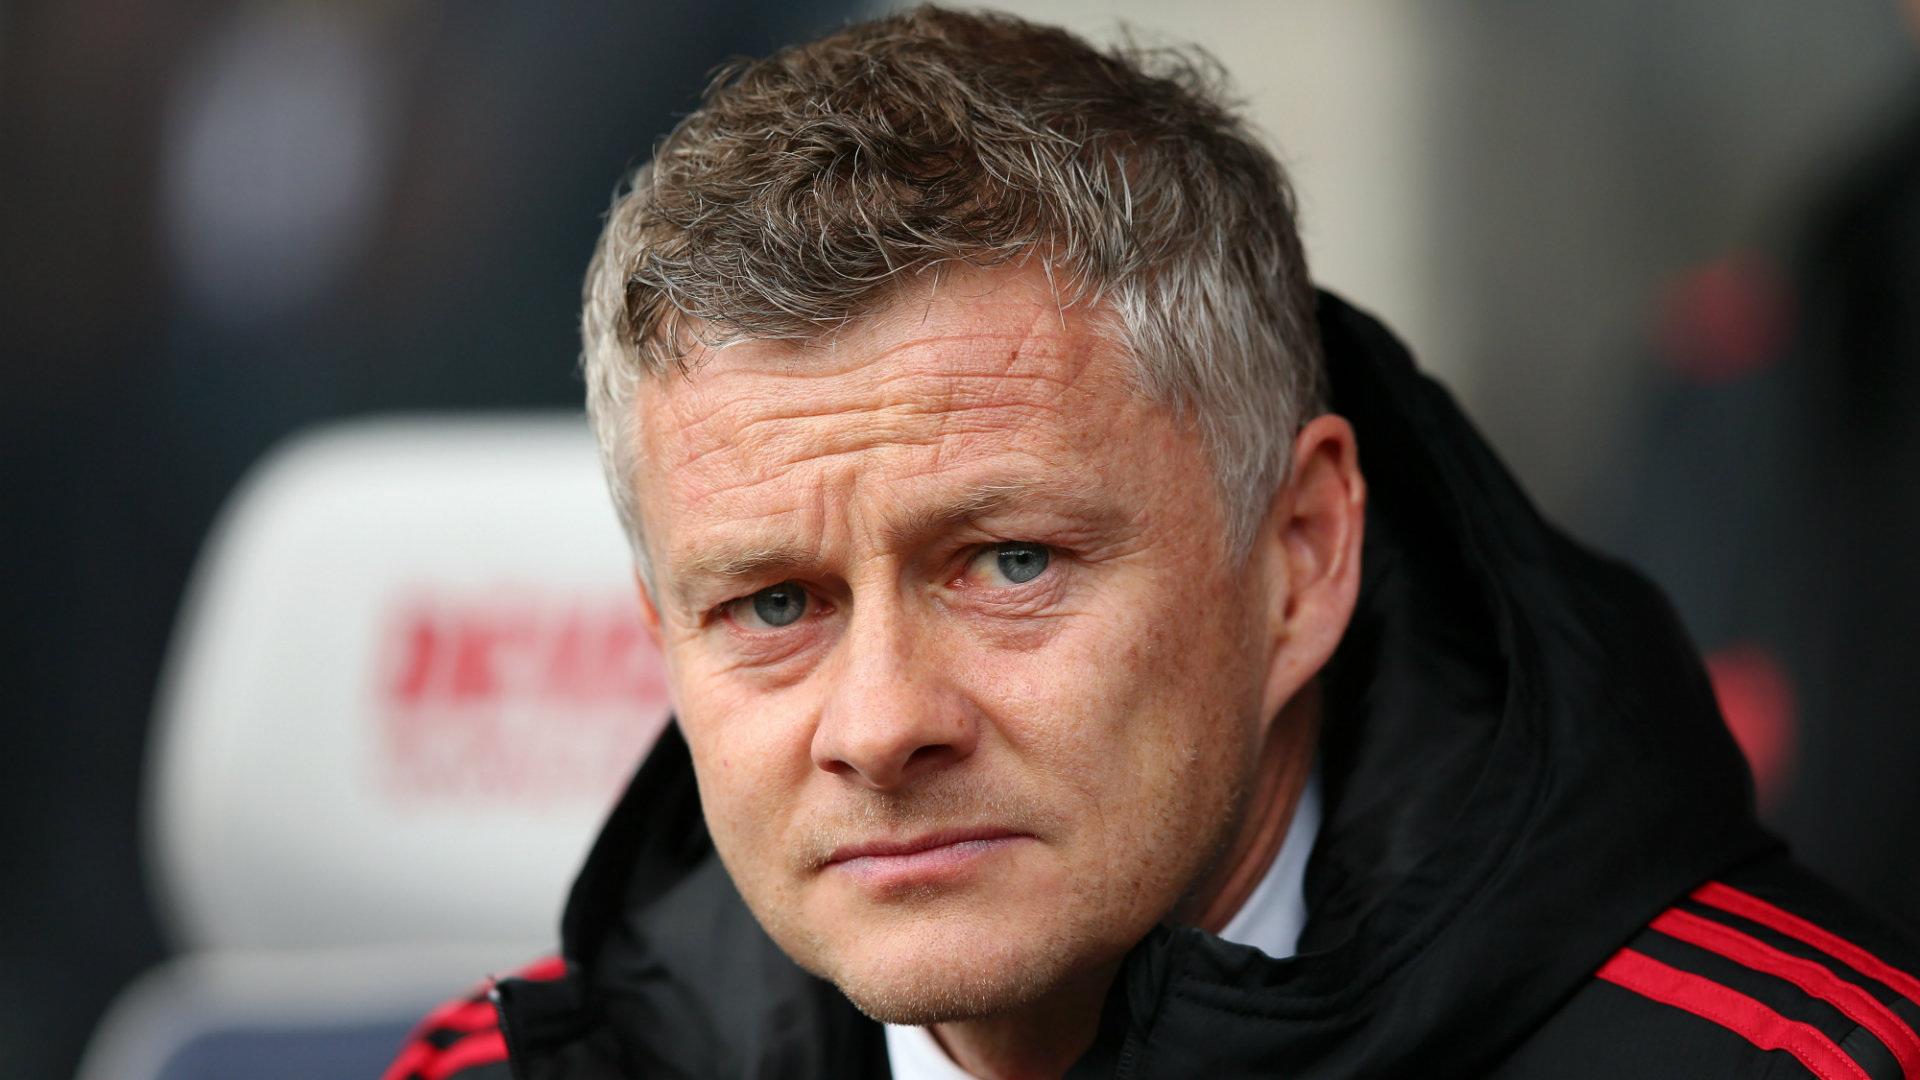 Man Utd coaches ready to push Solskjaer's underperforming squad to 'the next level'